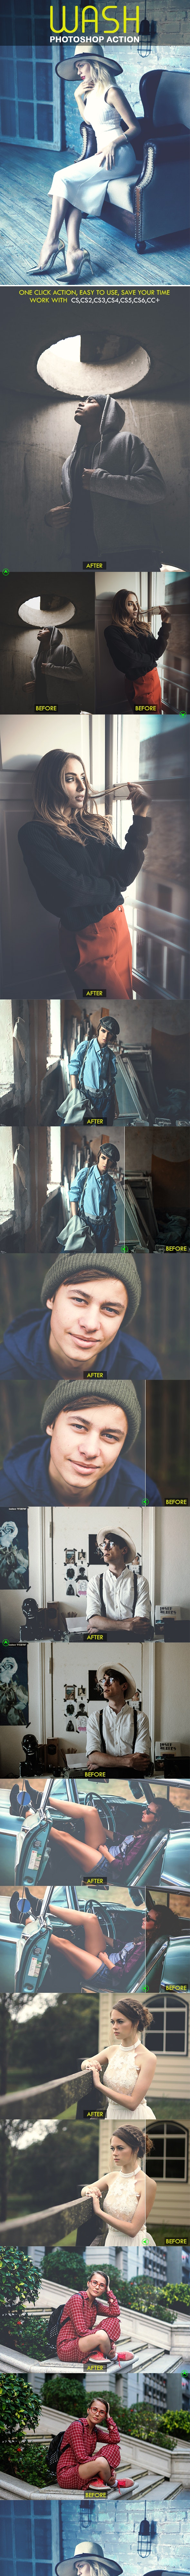 Wash Photoshop Action - Photo Effects Actions